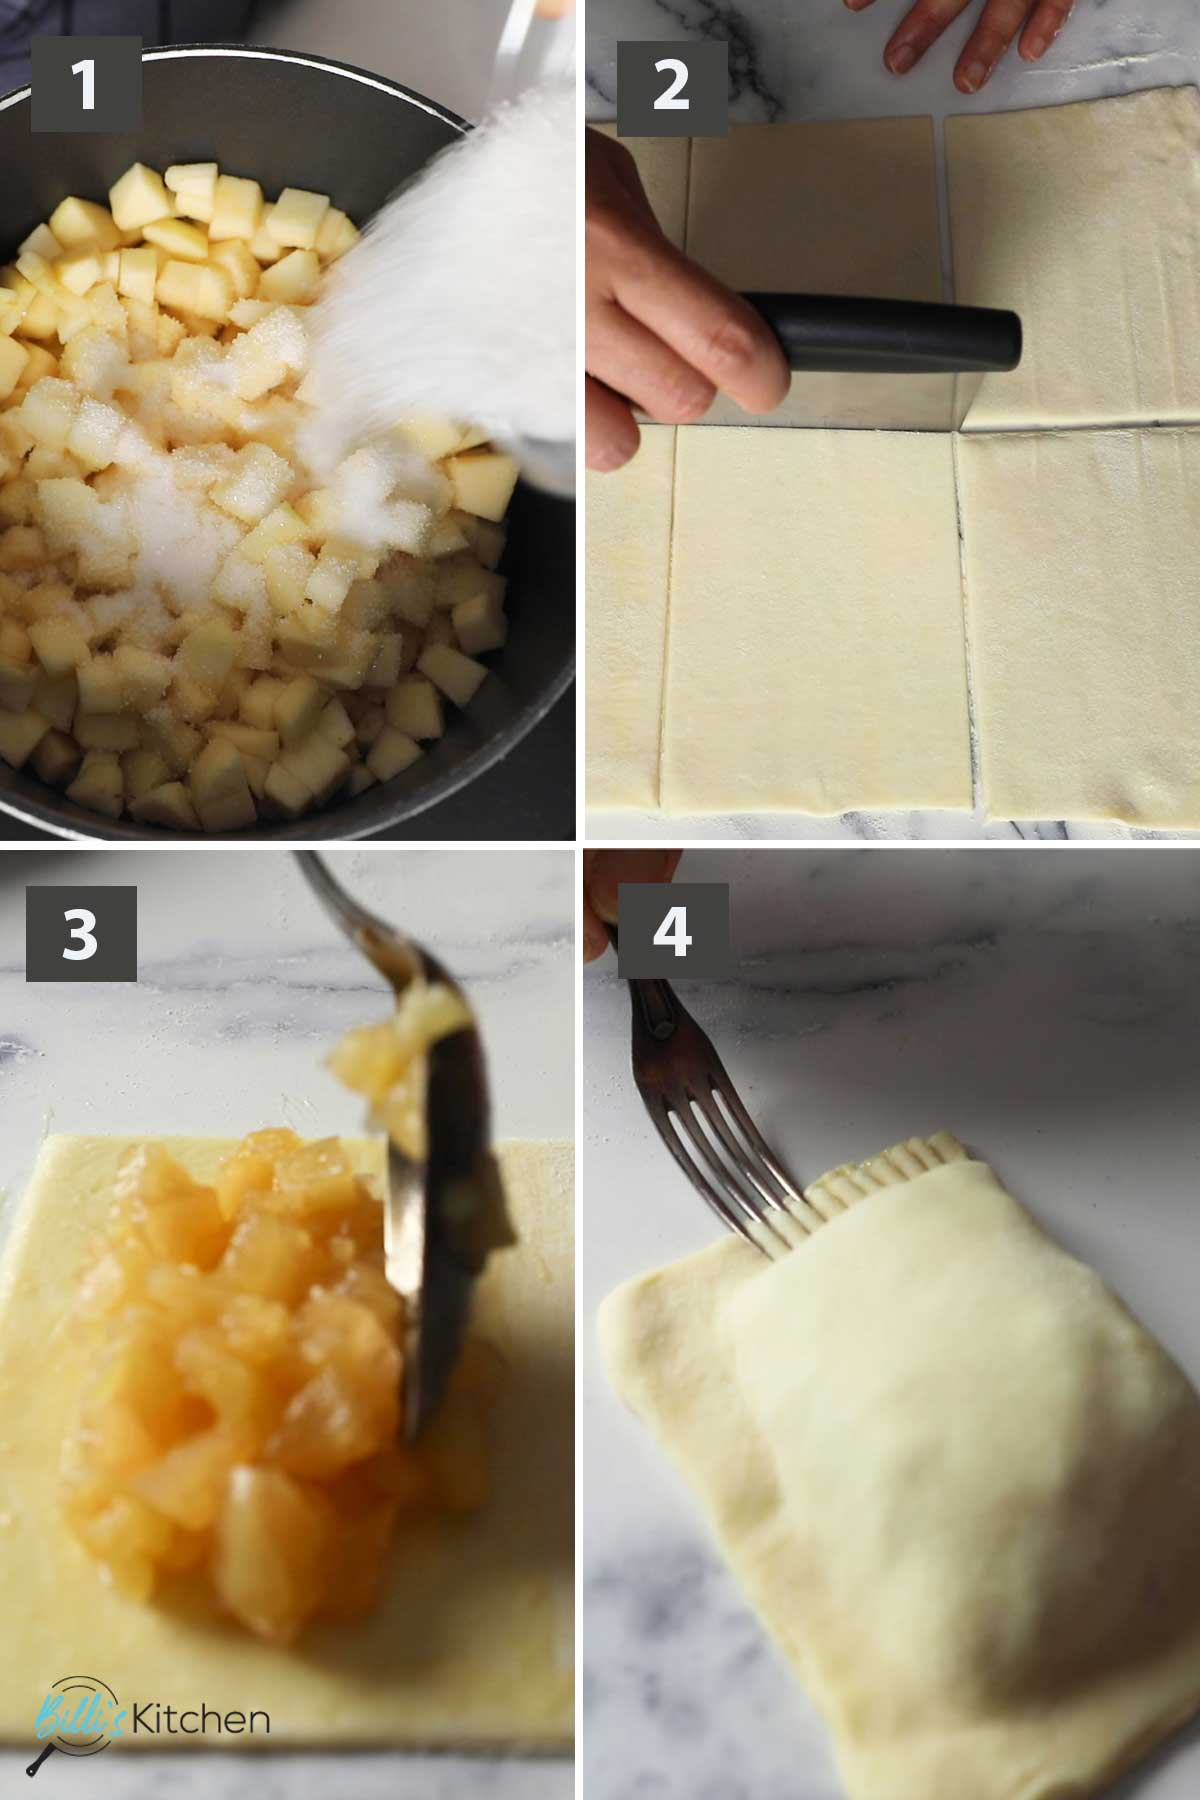 First collage of images showing the step by step process on how to prepare apple turnovers with puff pastry.